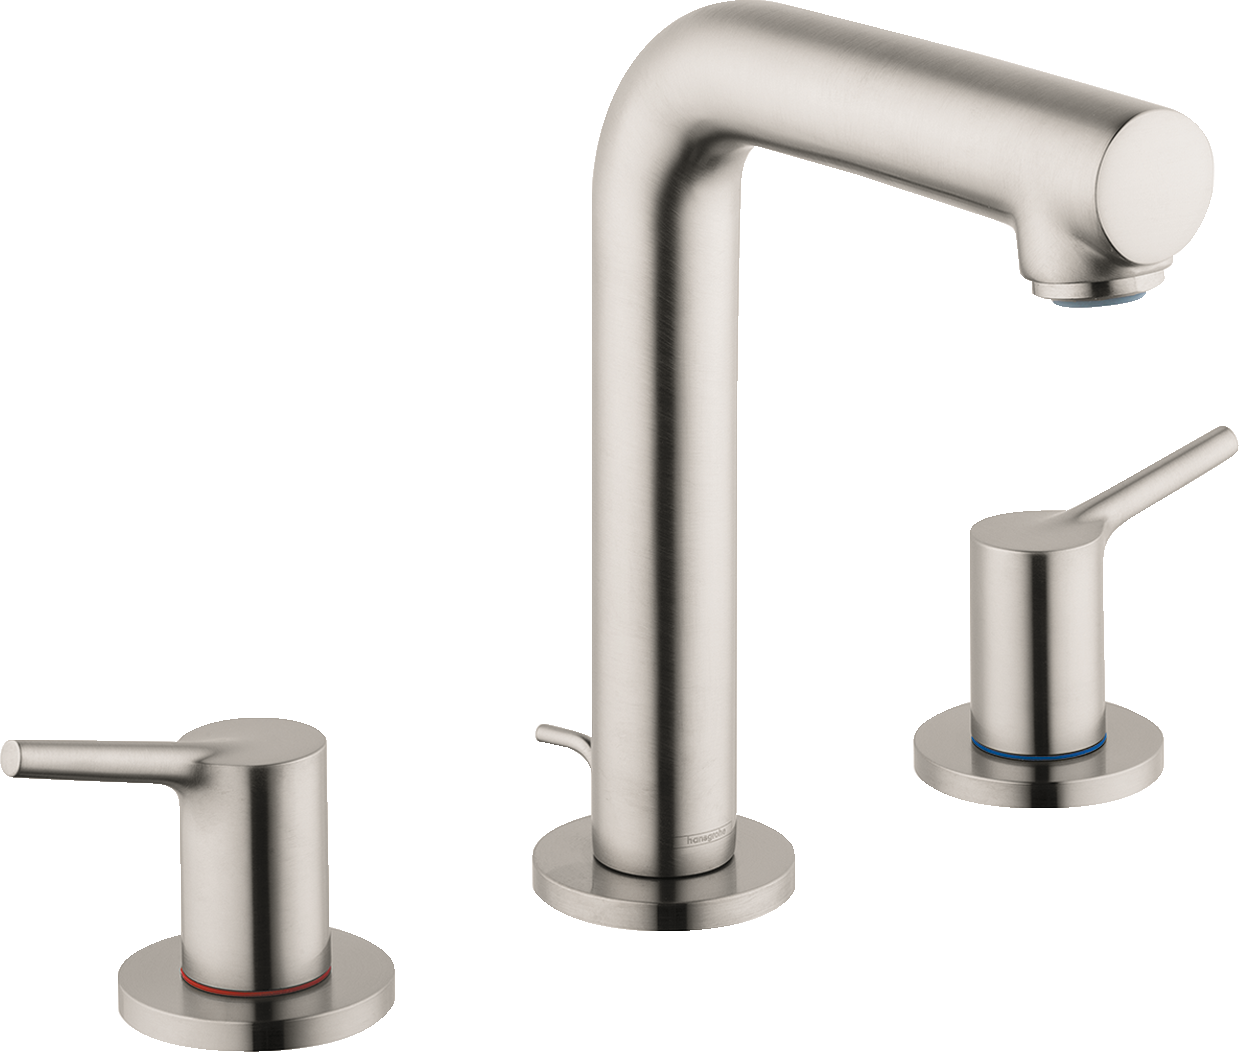 Talis S Washbasin Faucets Brushed Nickel Art No